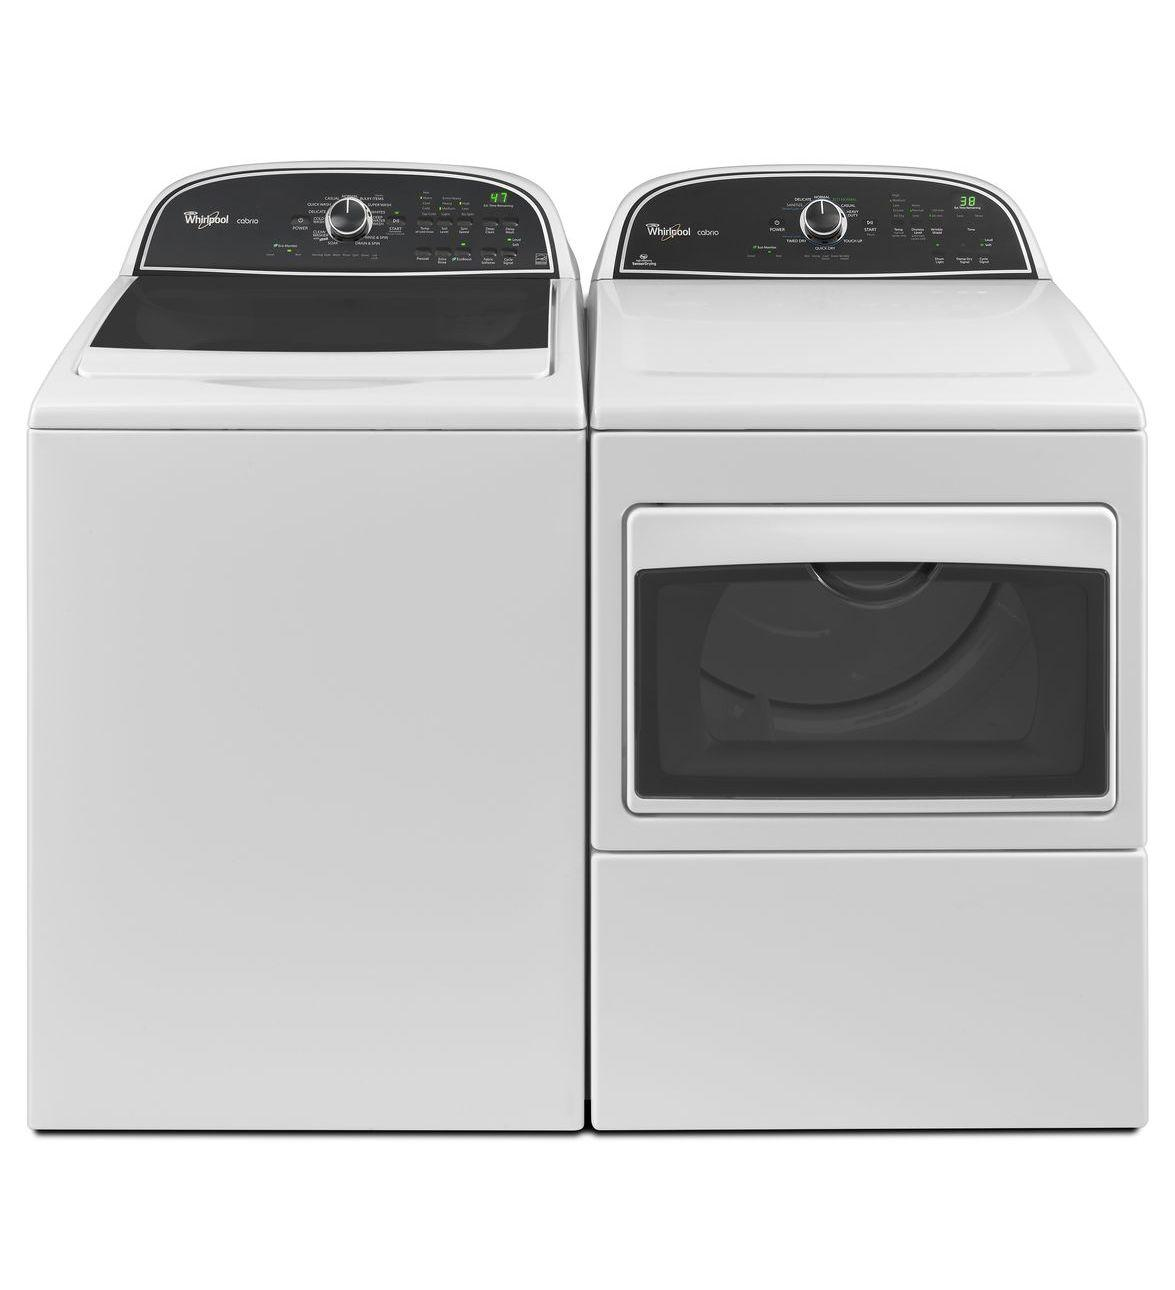 Whirlpool Wed5800bw 27 Quot Electric Dryer With 7 4 Cu Ft